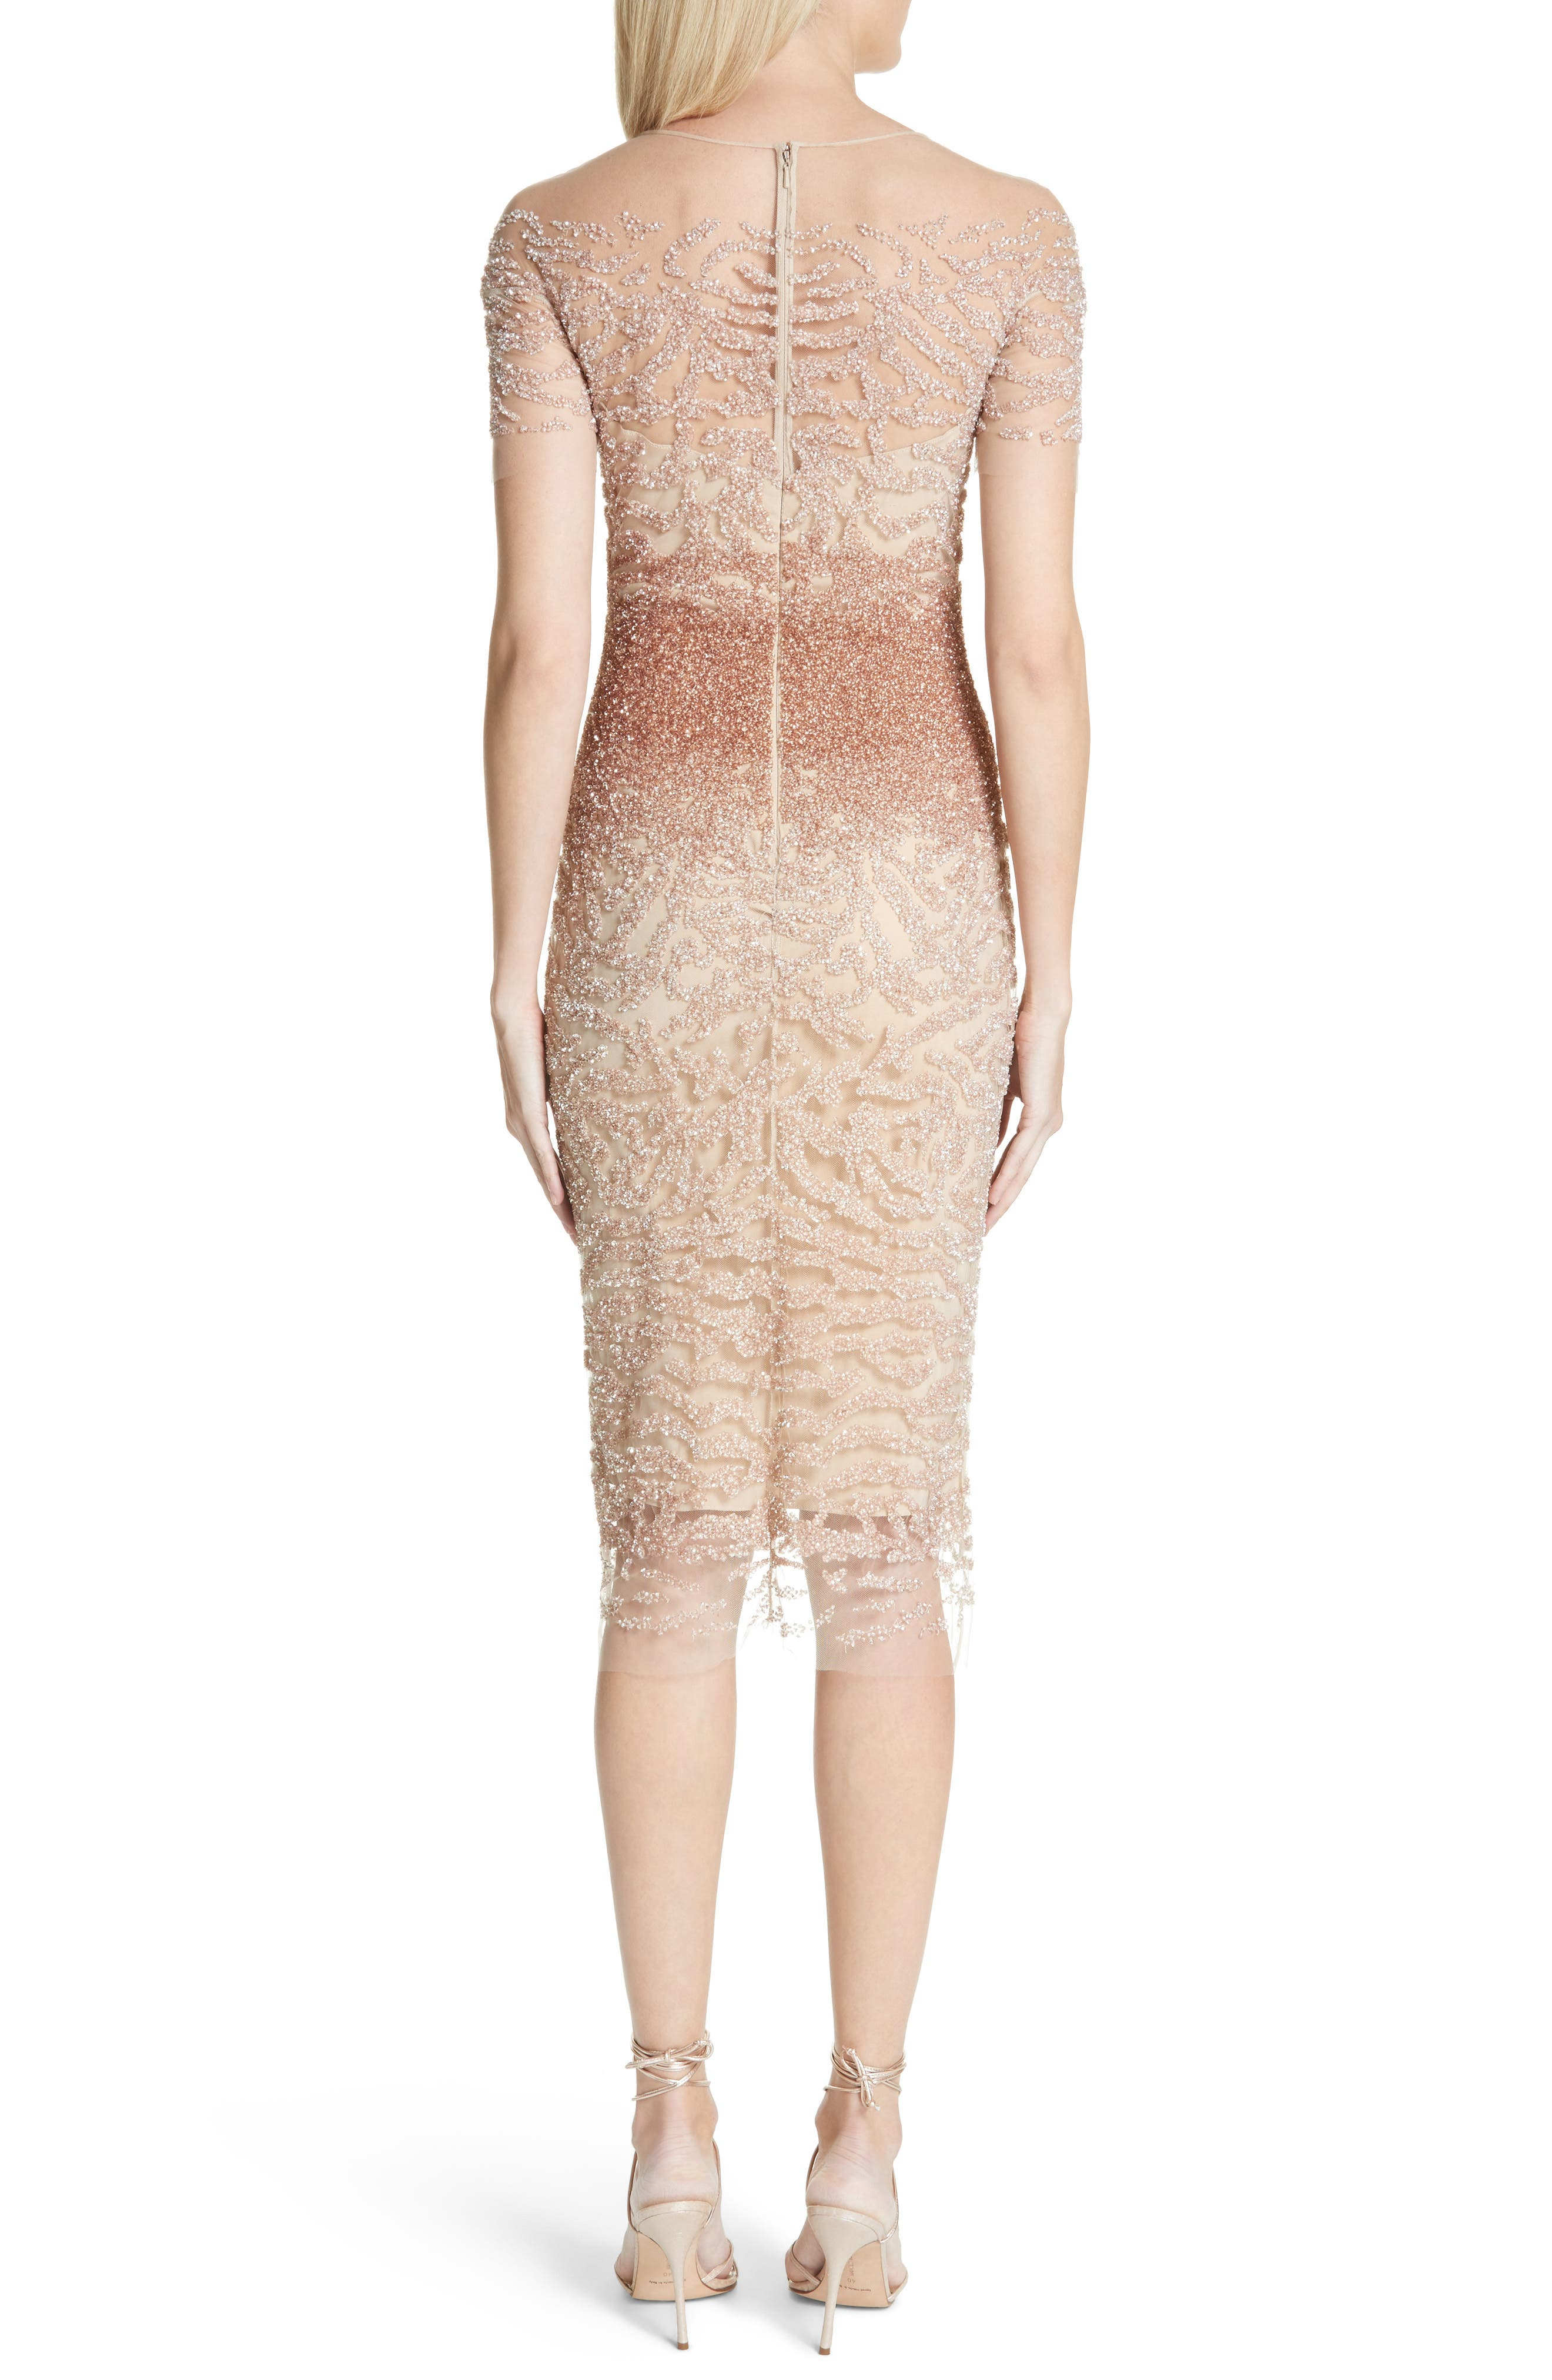 Beaded Illusion Dress,                             Alternate thumbnail 2, color,                             Gold/ Copper Ombre